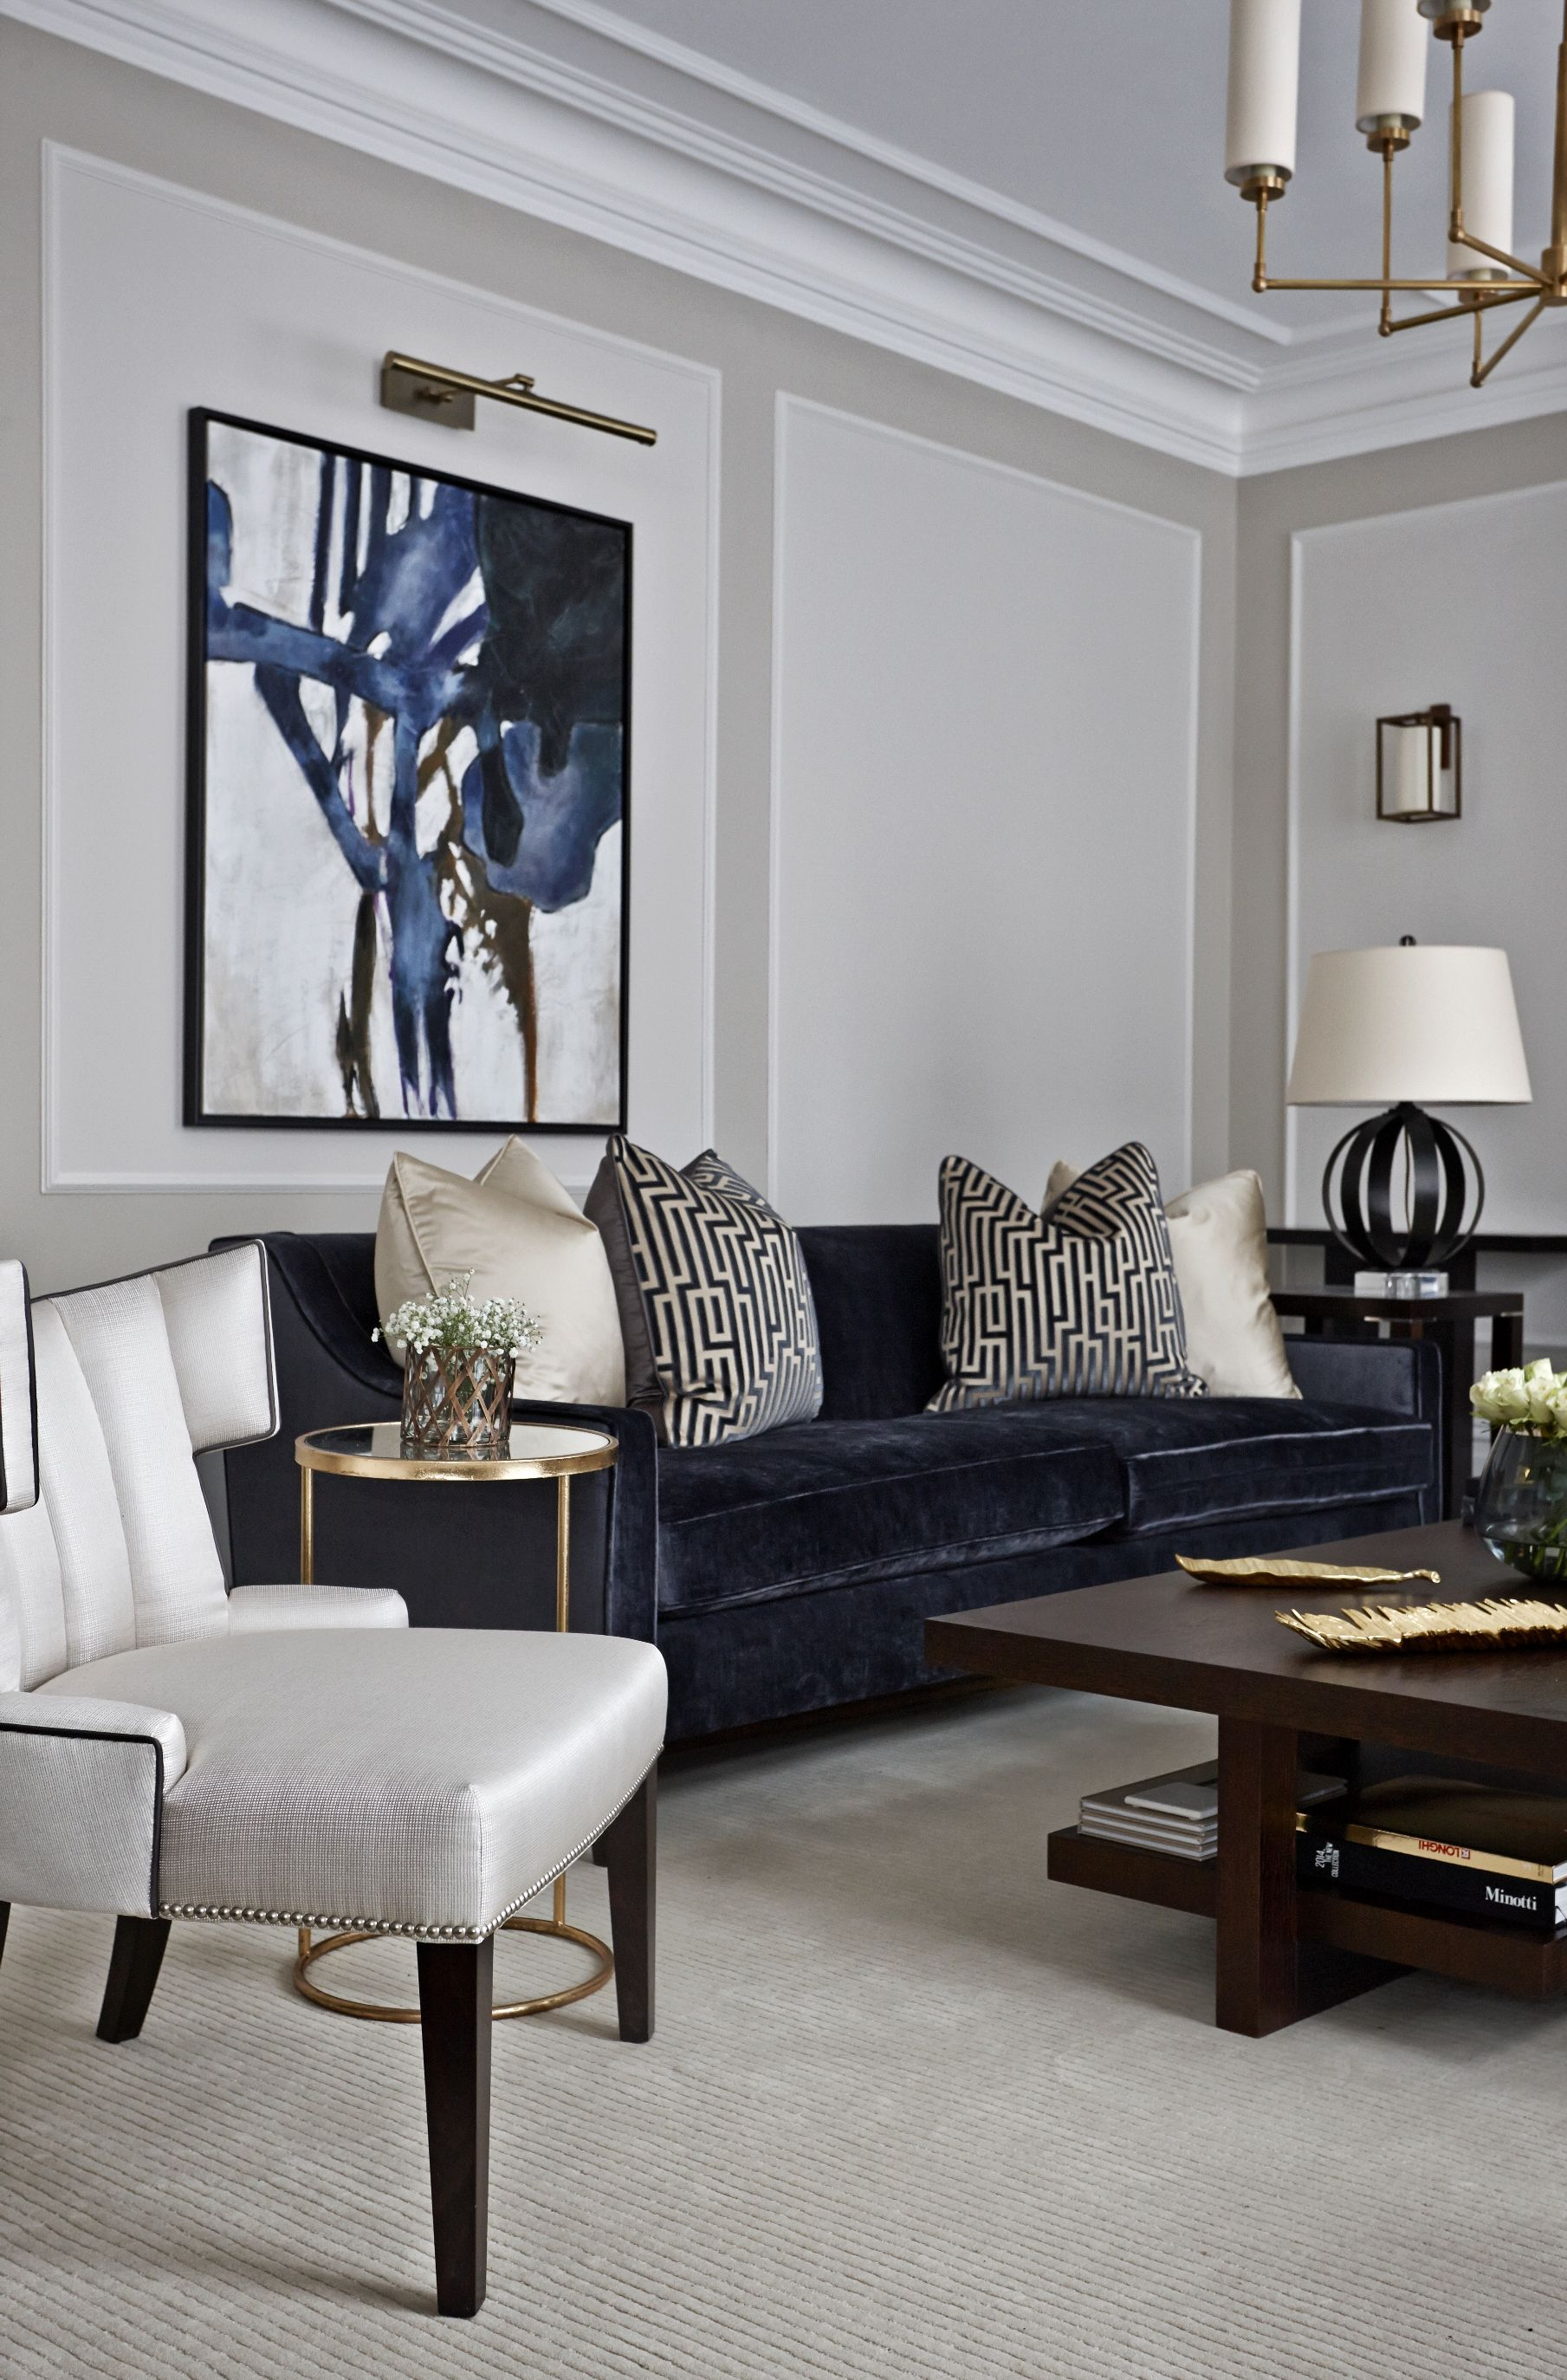 How to Get a Modern Classic Living Room - Inspiration Design ...